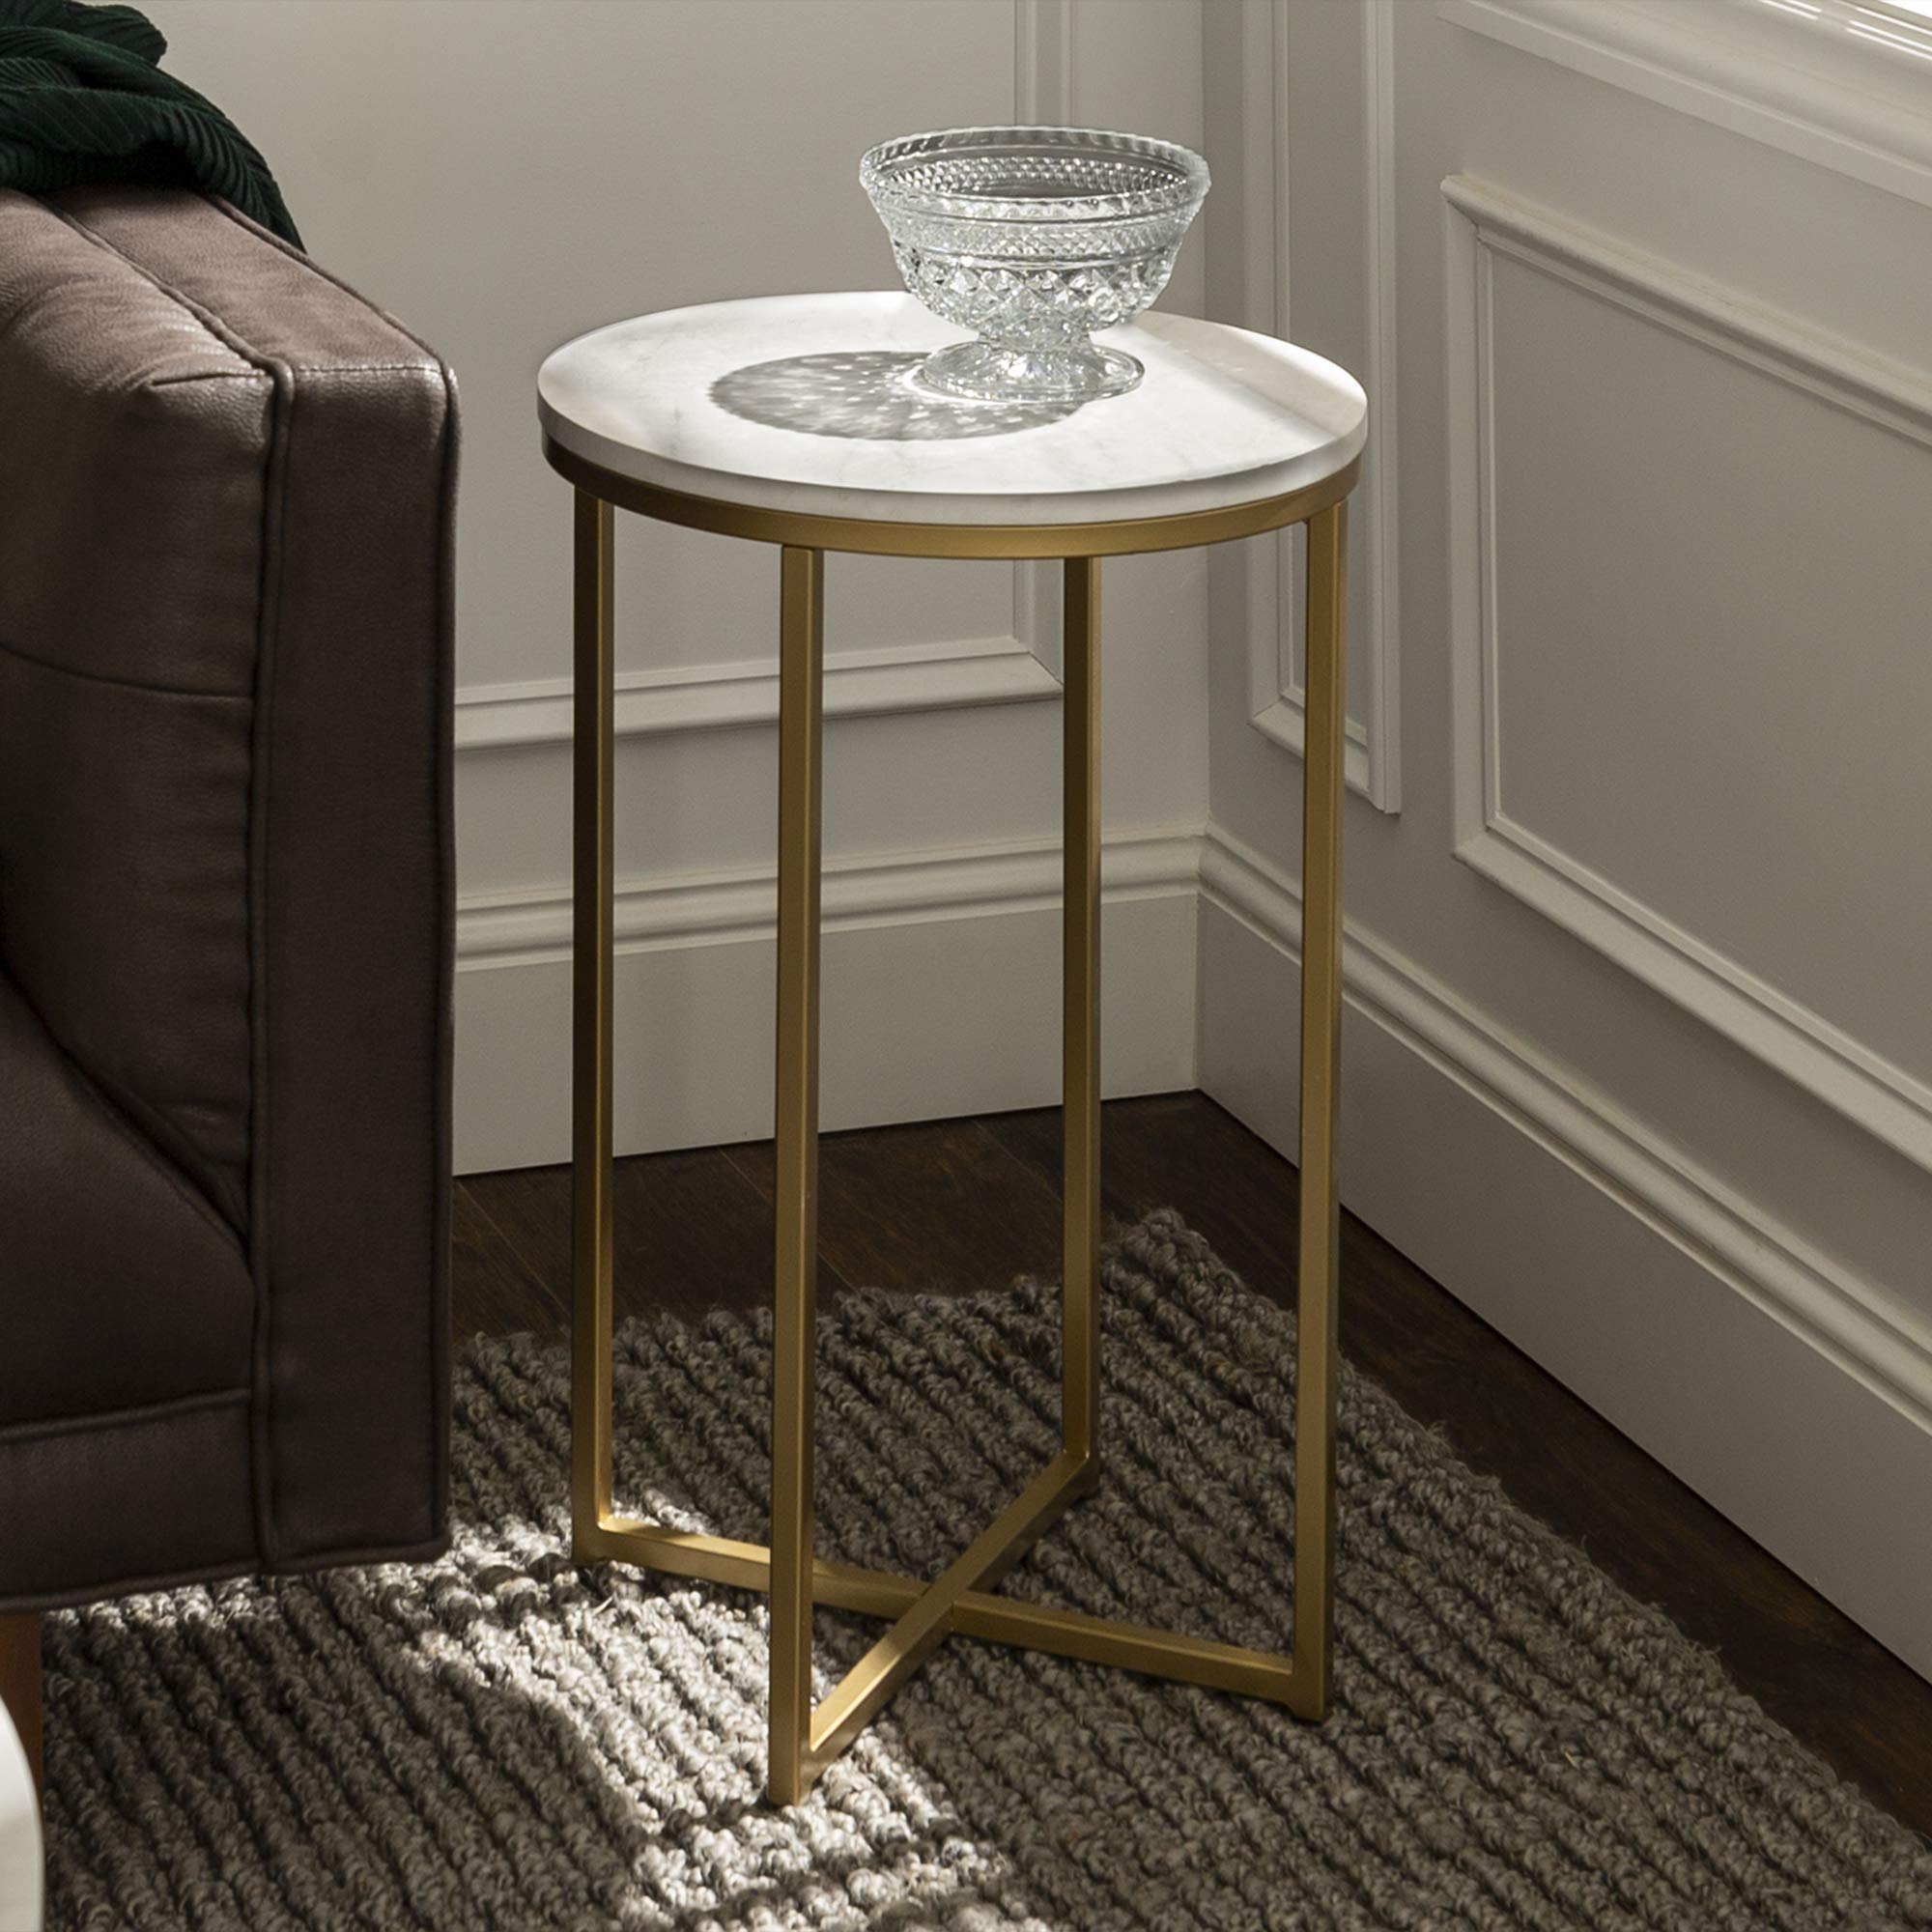 Walker Edison Cora Modern Faux Marble Round Accent Table with X Base, 16 Inch, Marble and Gold